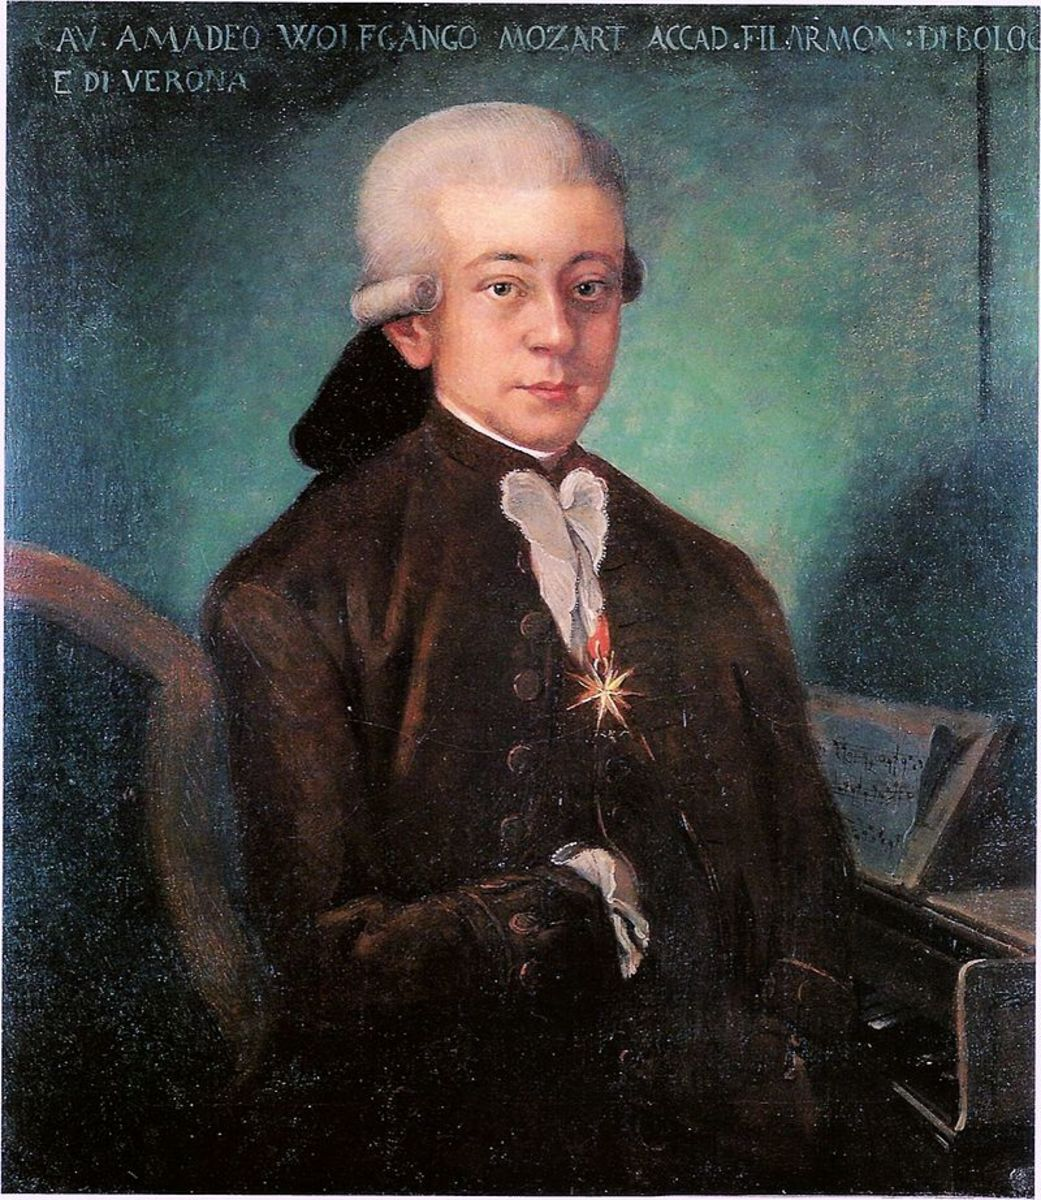 Mozart was one of the most influential composers of the Classical period.